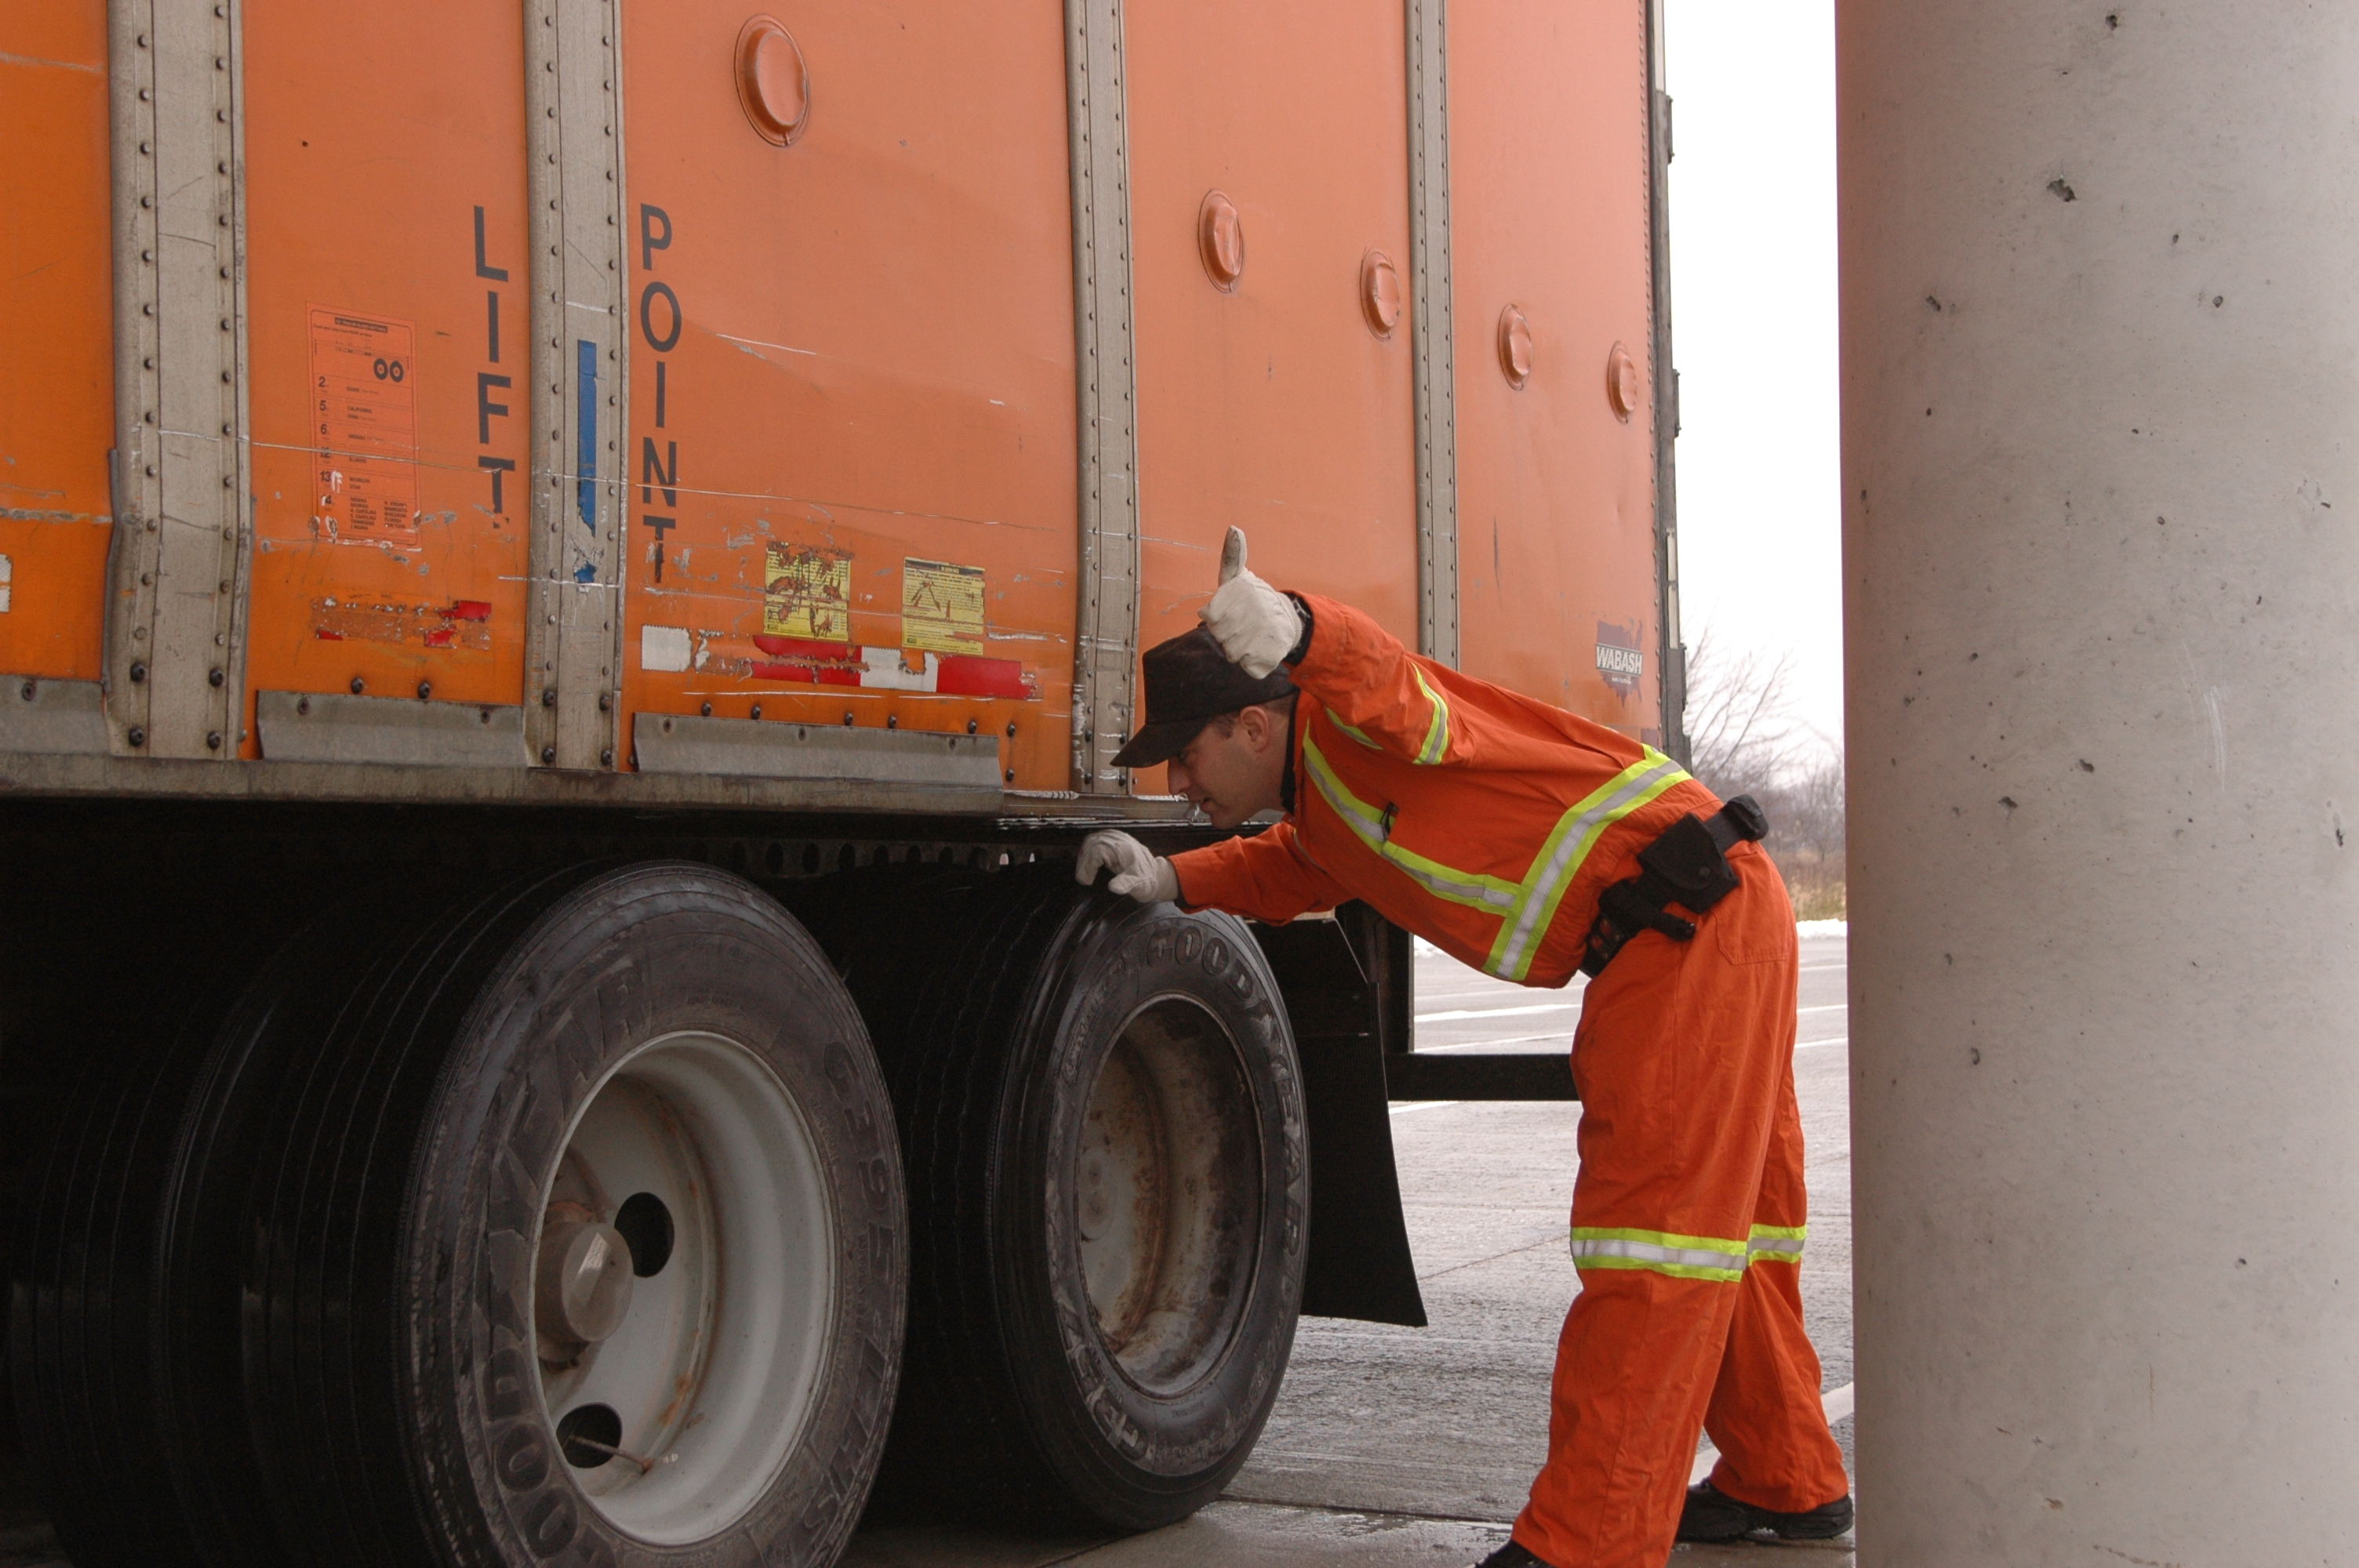 CVSA Takes Issue with ATA Call for More Traffic Enforcement